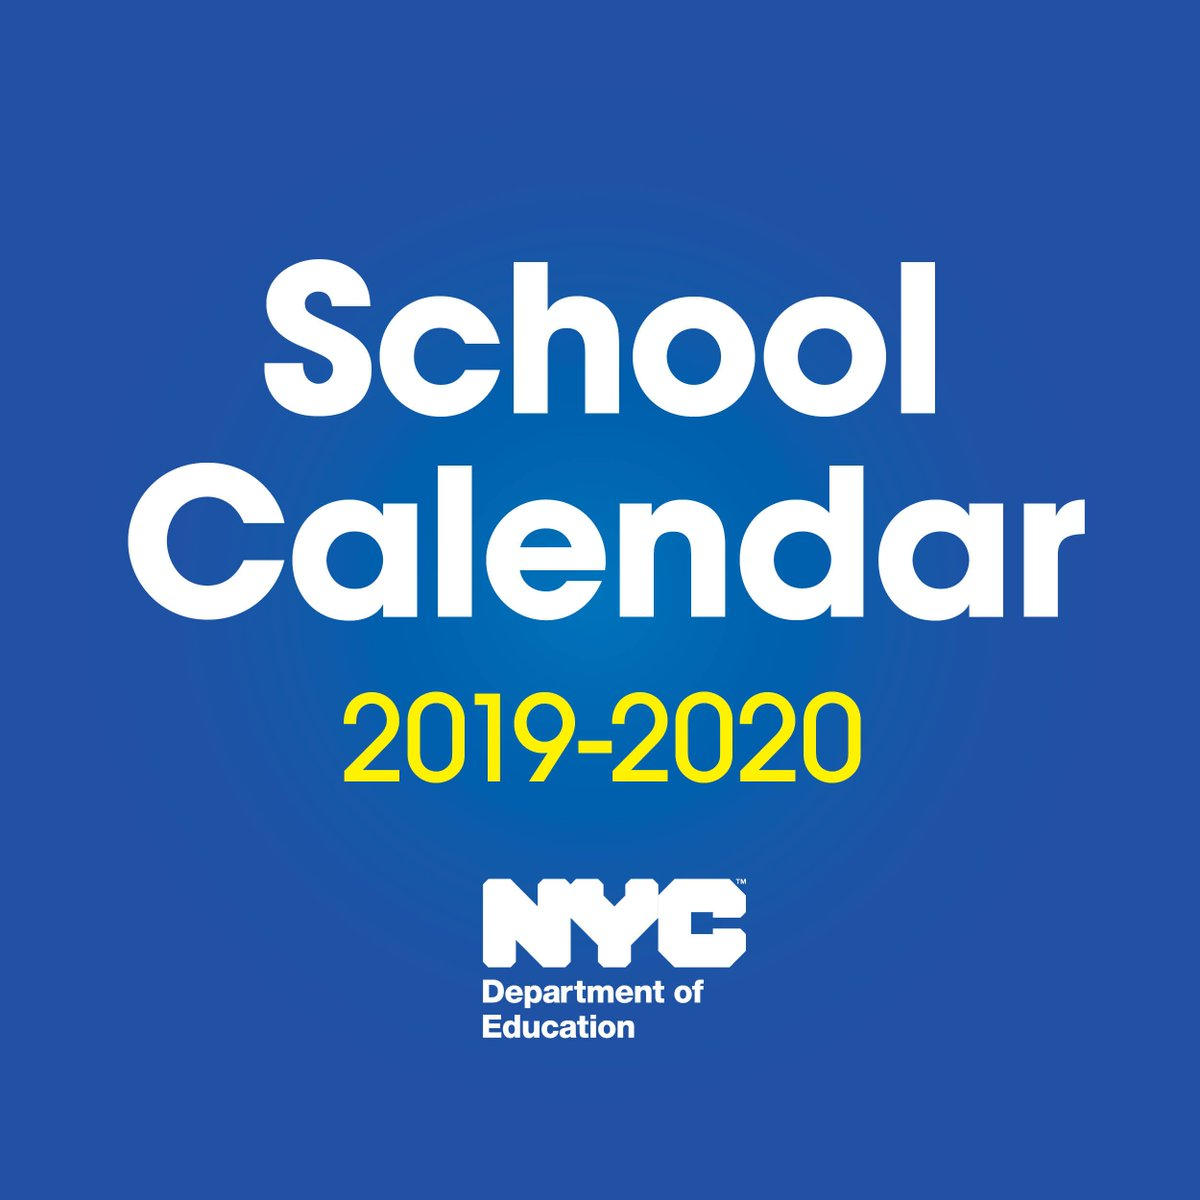 Nyc Doe School Calendar 2020 NYC Public Schools on Twitter: